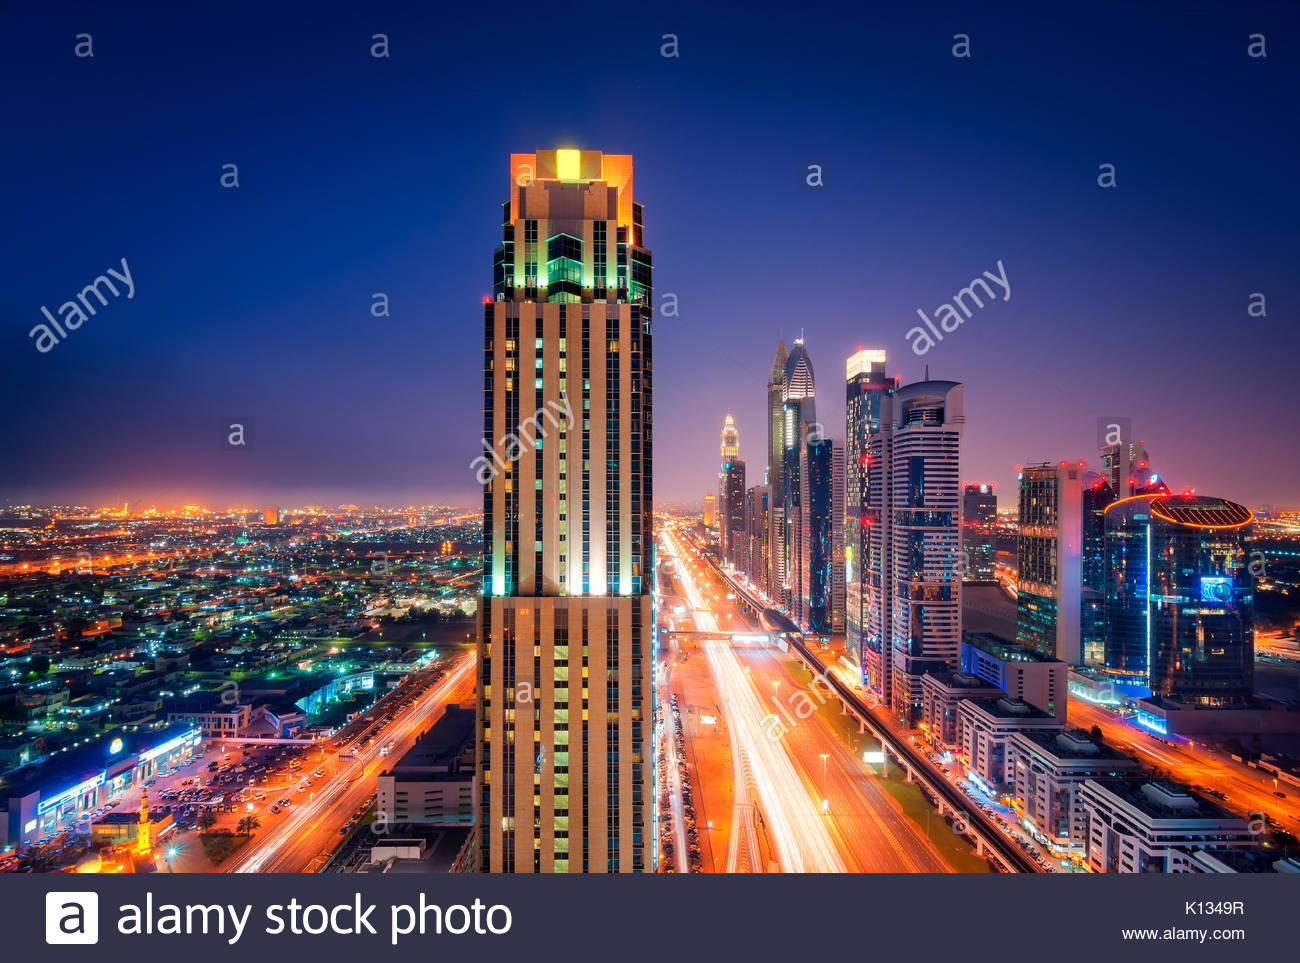 Amazing night dubai downtown skyline with tallest skyscrapers and traffic jam during rush hour, Dubai, United Arab - Stock Image